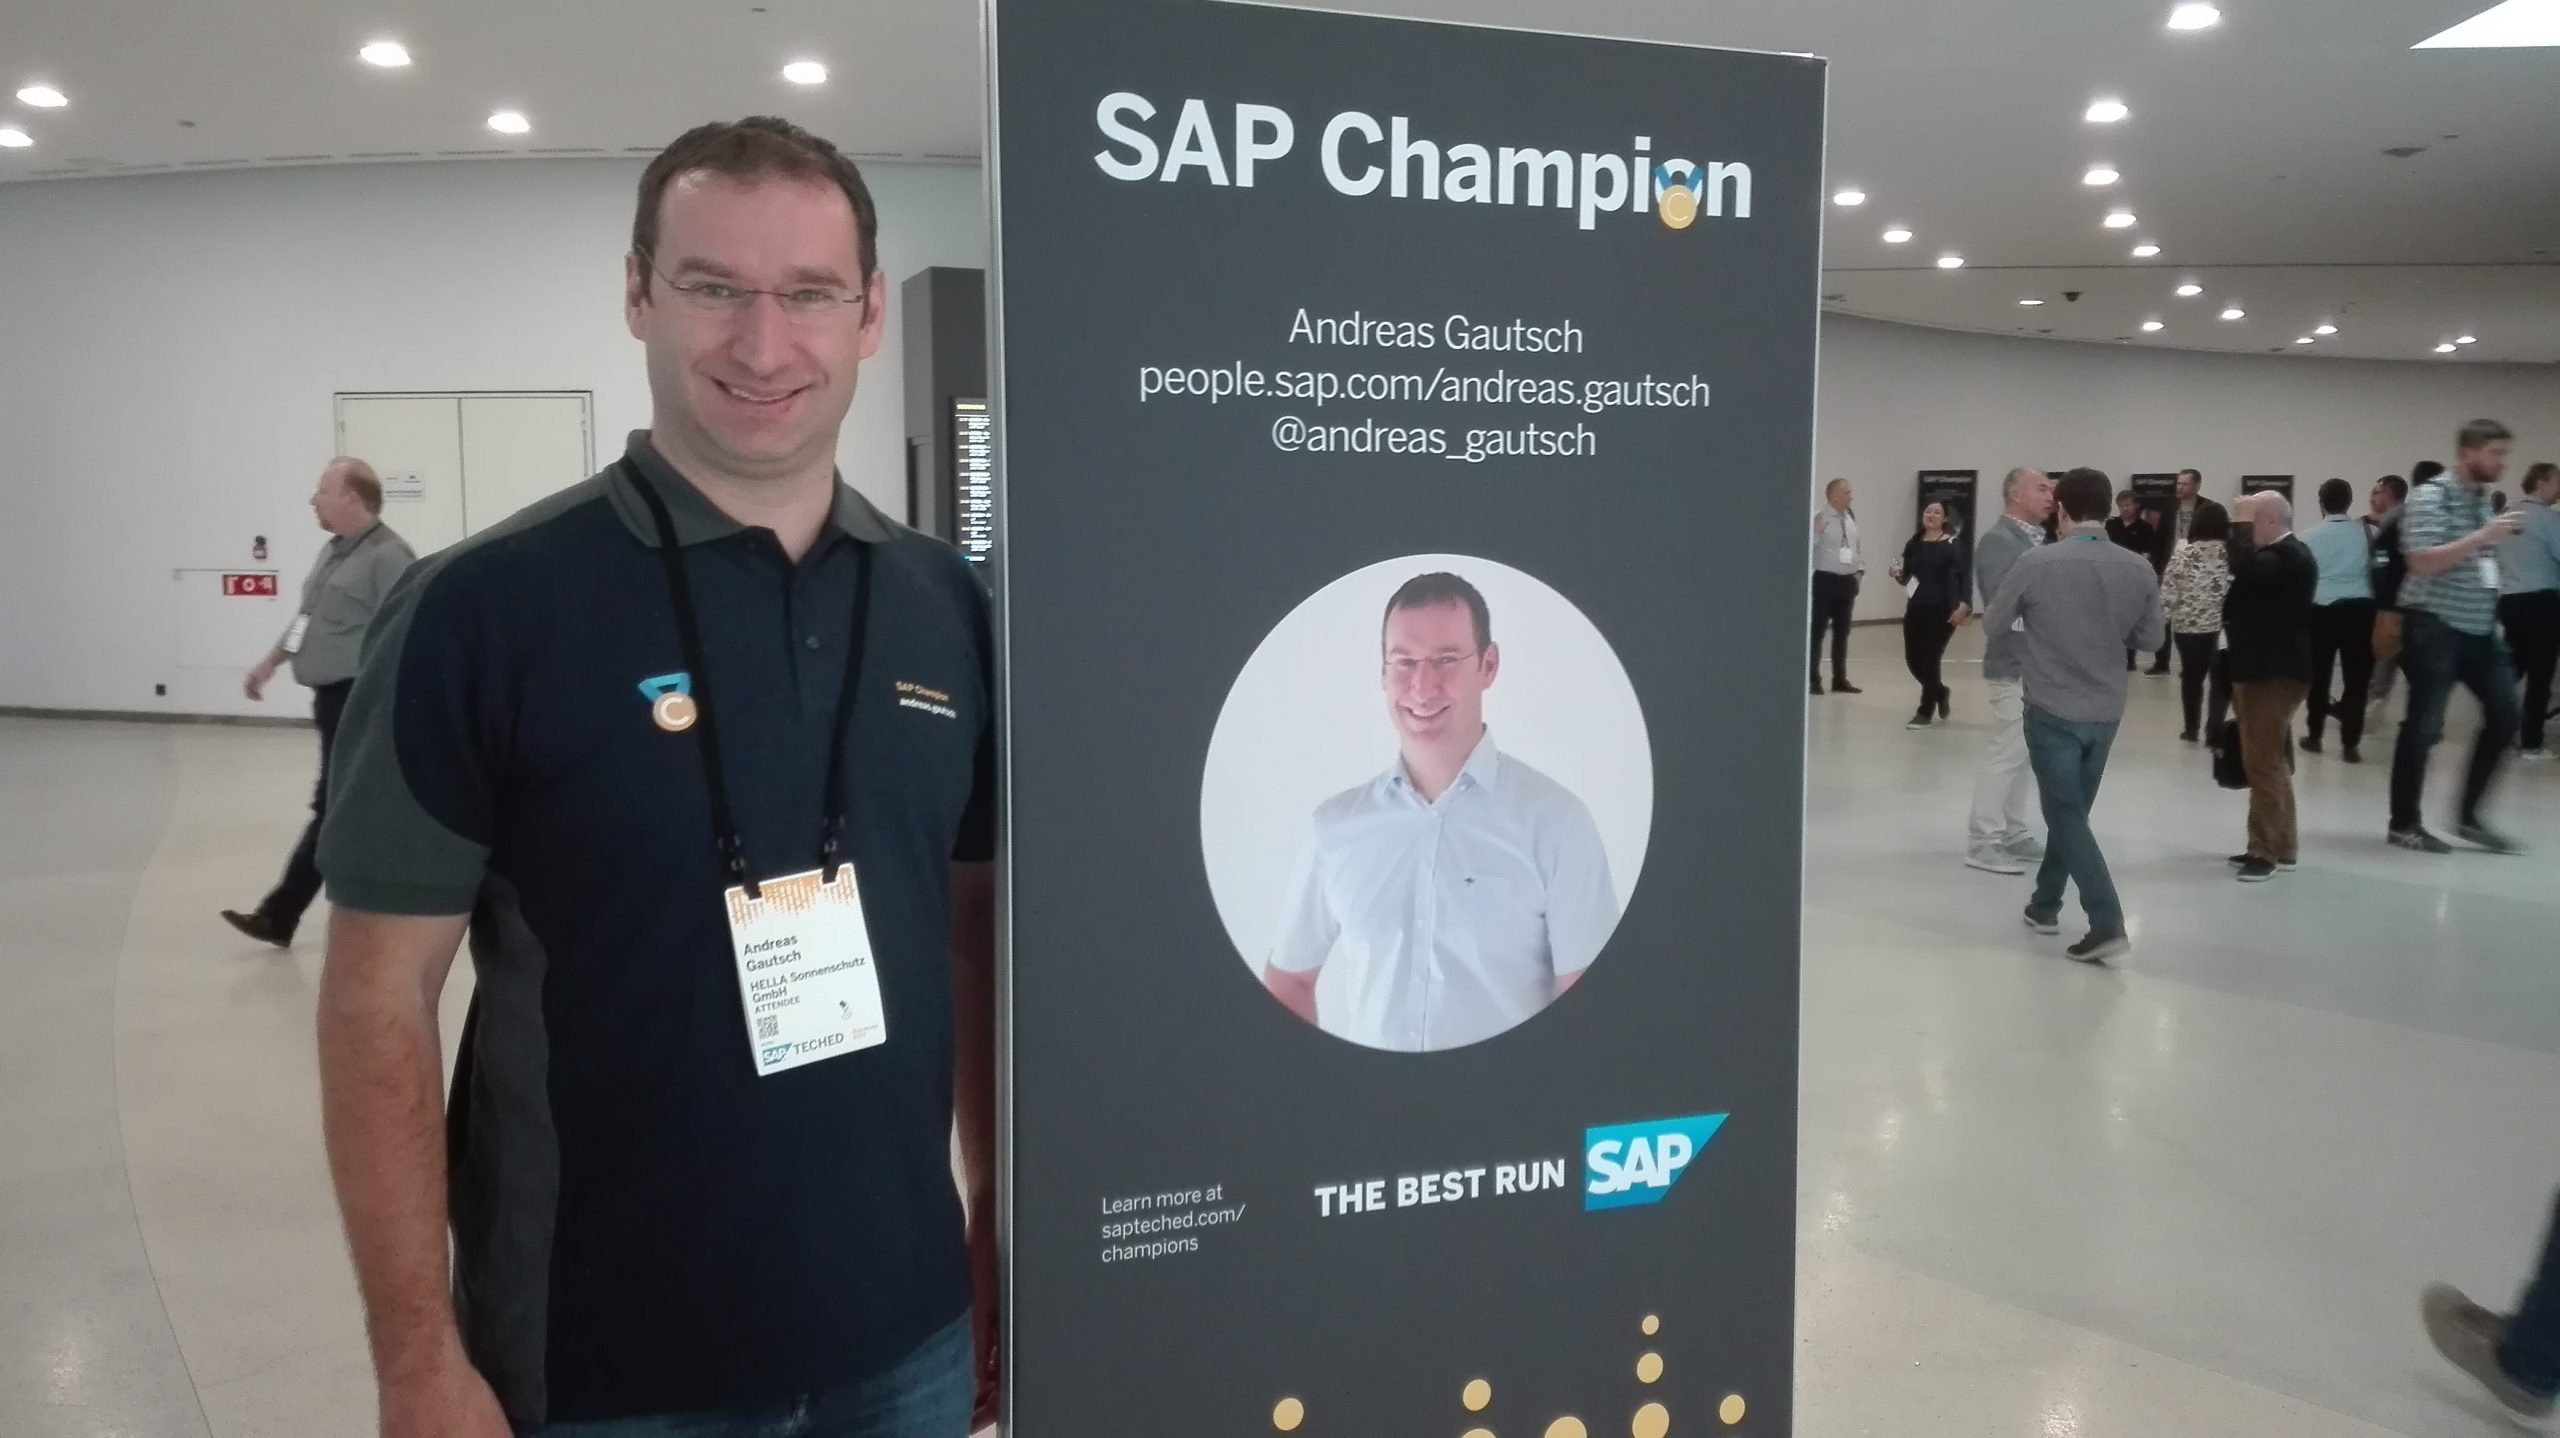 Andreas%20says%20that%20being%20selected%20as%20one%20of%20the%20first%20members%20of%20the%20SAP%20Champions%20program%20is%20a%20proud%20moment%20that%20he%20will%20always%20remember.